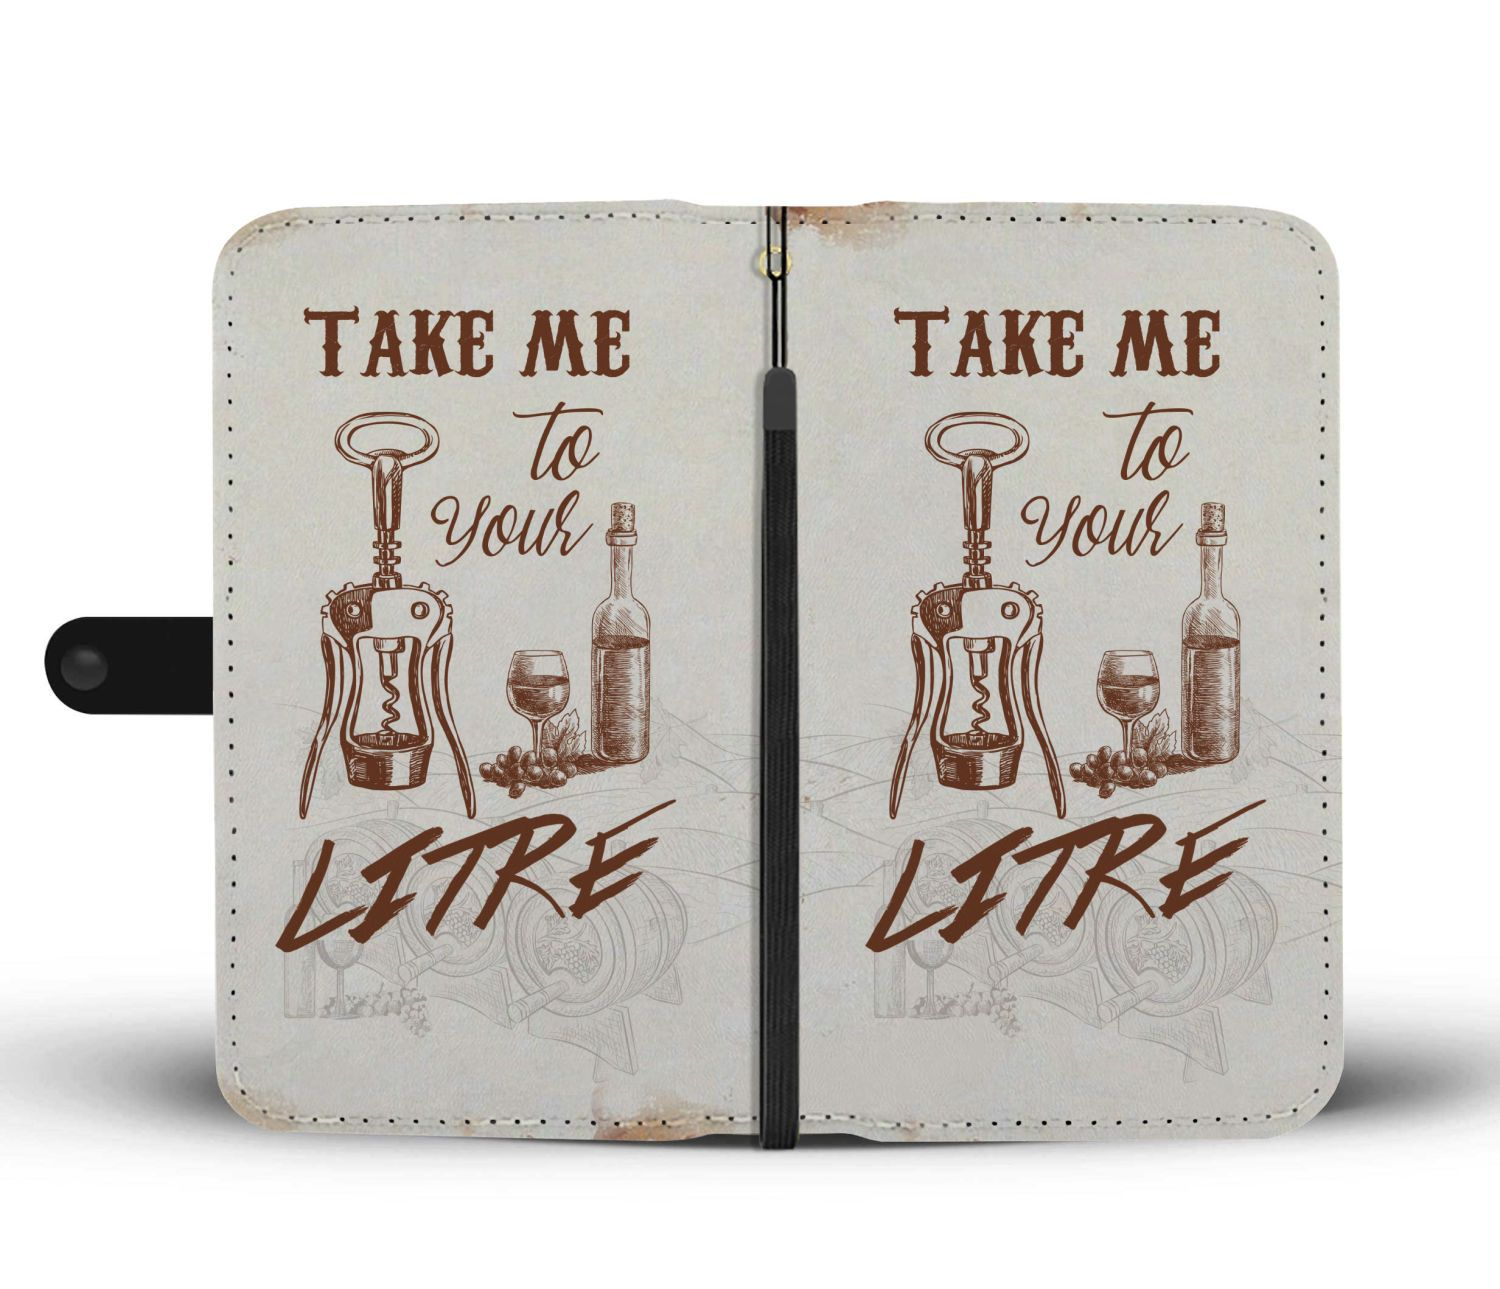 Take Me To your Litre Wine Wallet Phone Case